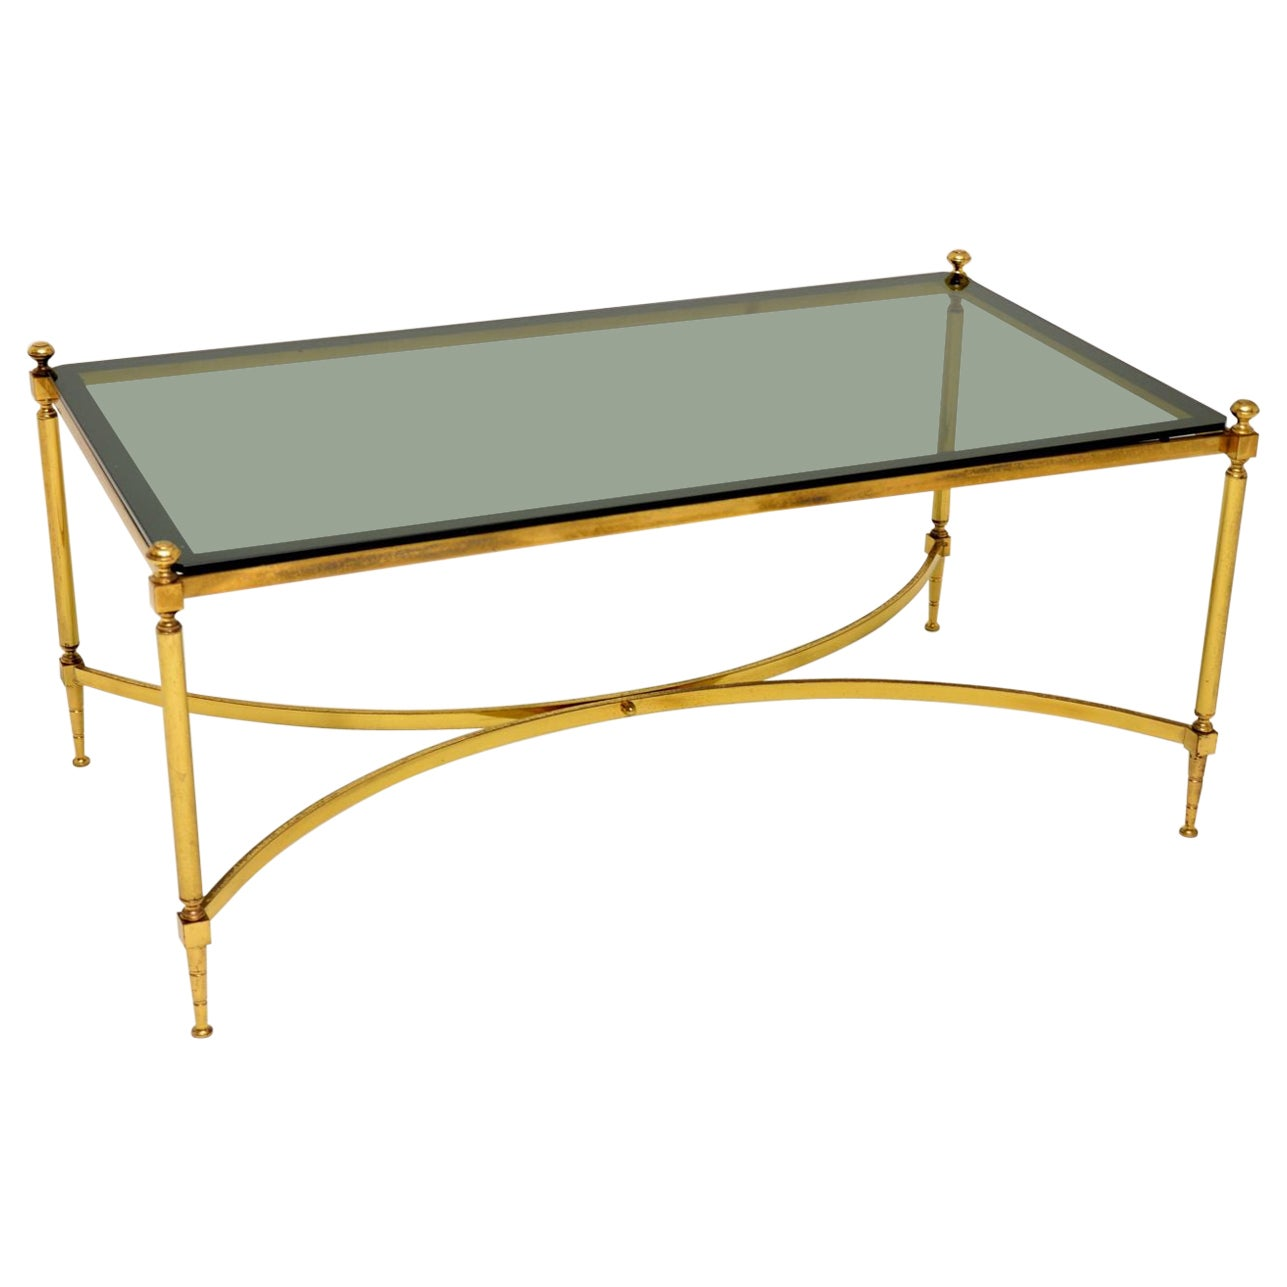 1960s Vintage Italian Brass Coffee Table